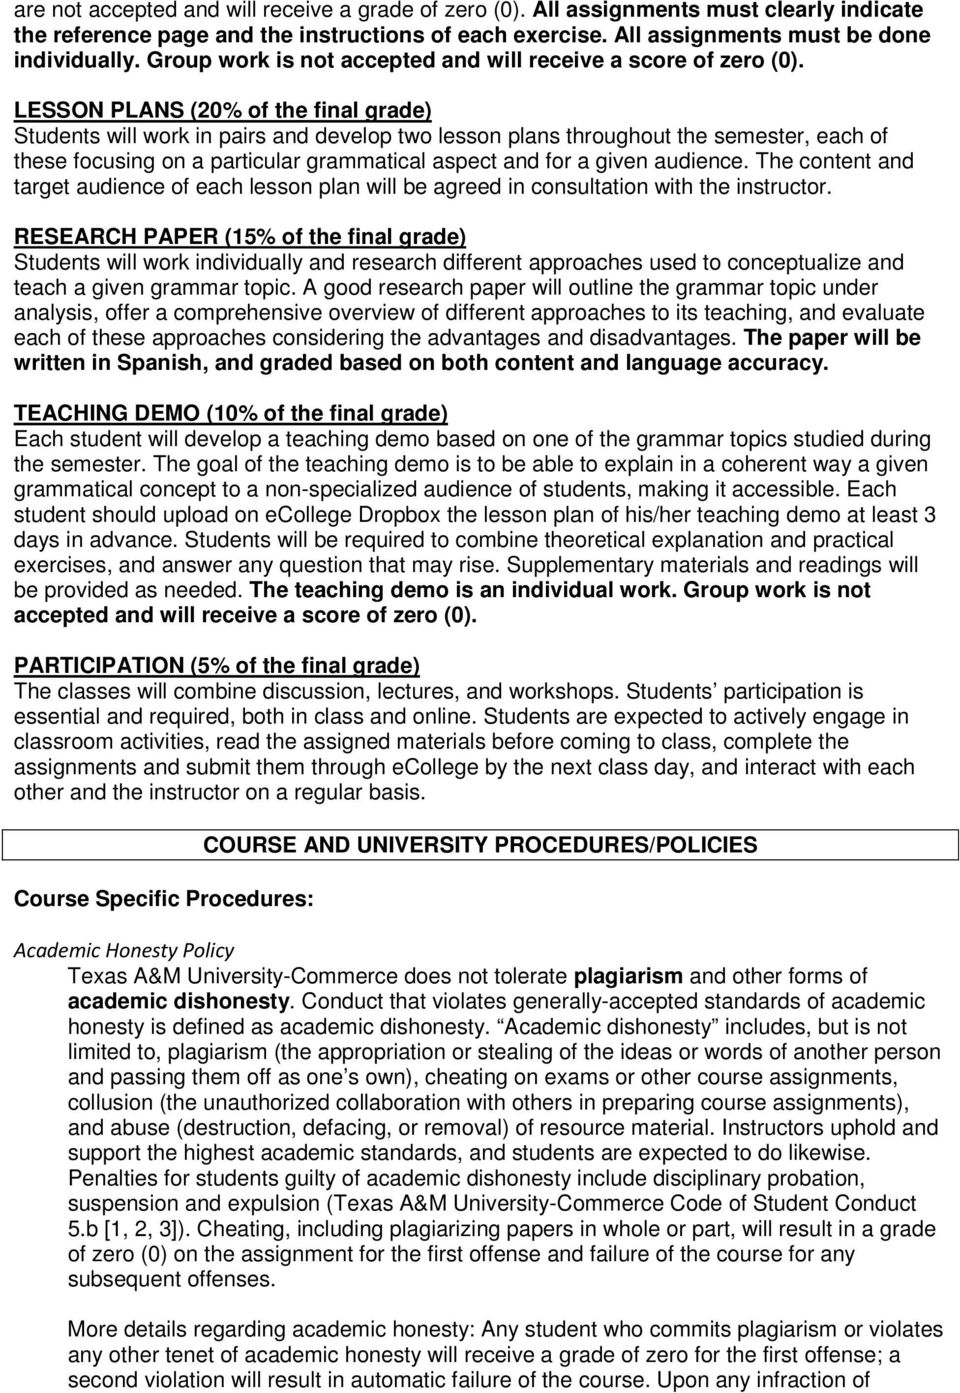 LESSON PLANS (20% of the final grade) Students will work in pairs and develop two lesson plans throughout the semester, each of these focusing on a particular grammatical aspect and for a given